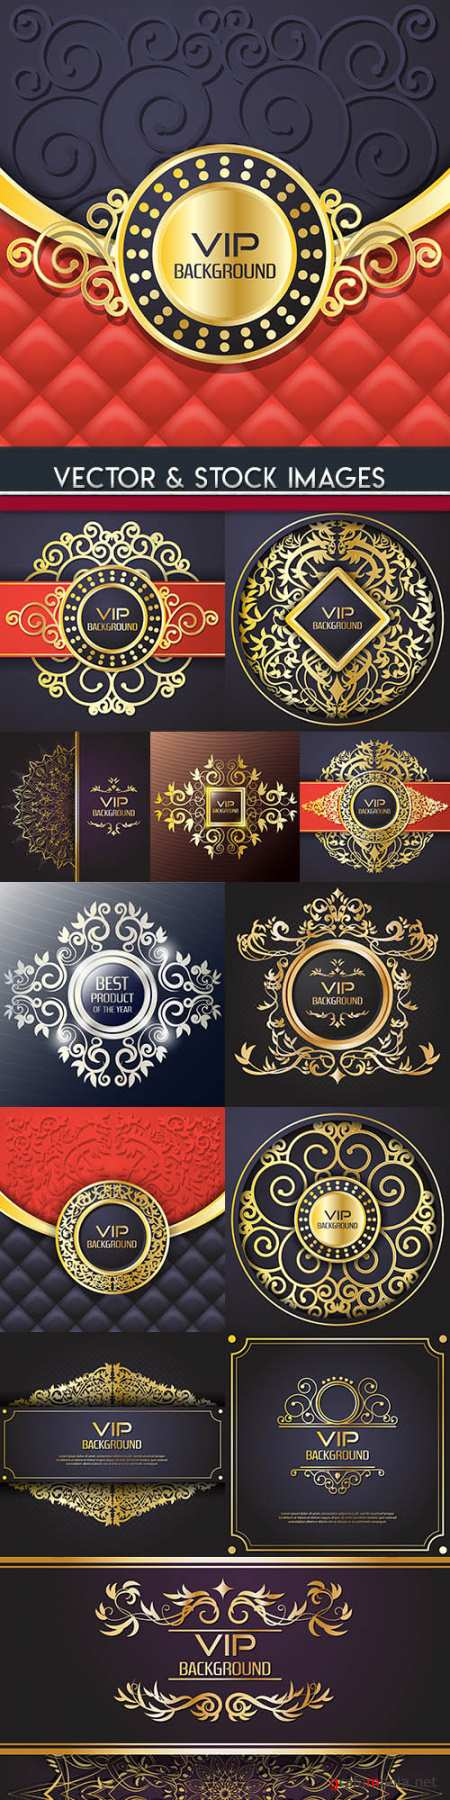 Luxury vip golden vintage elegant background